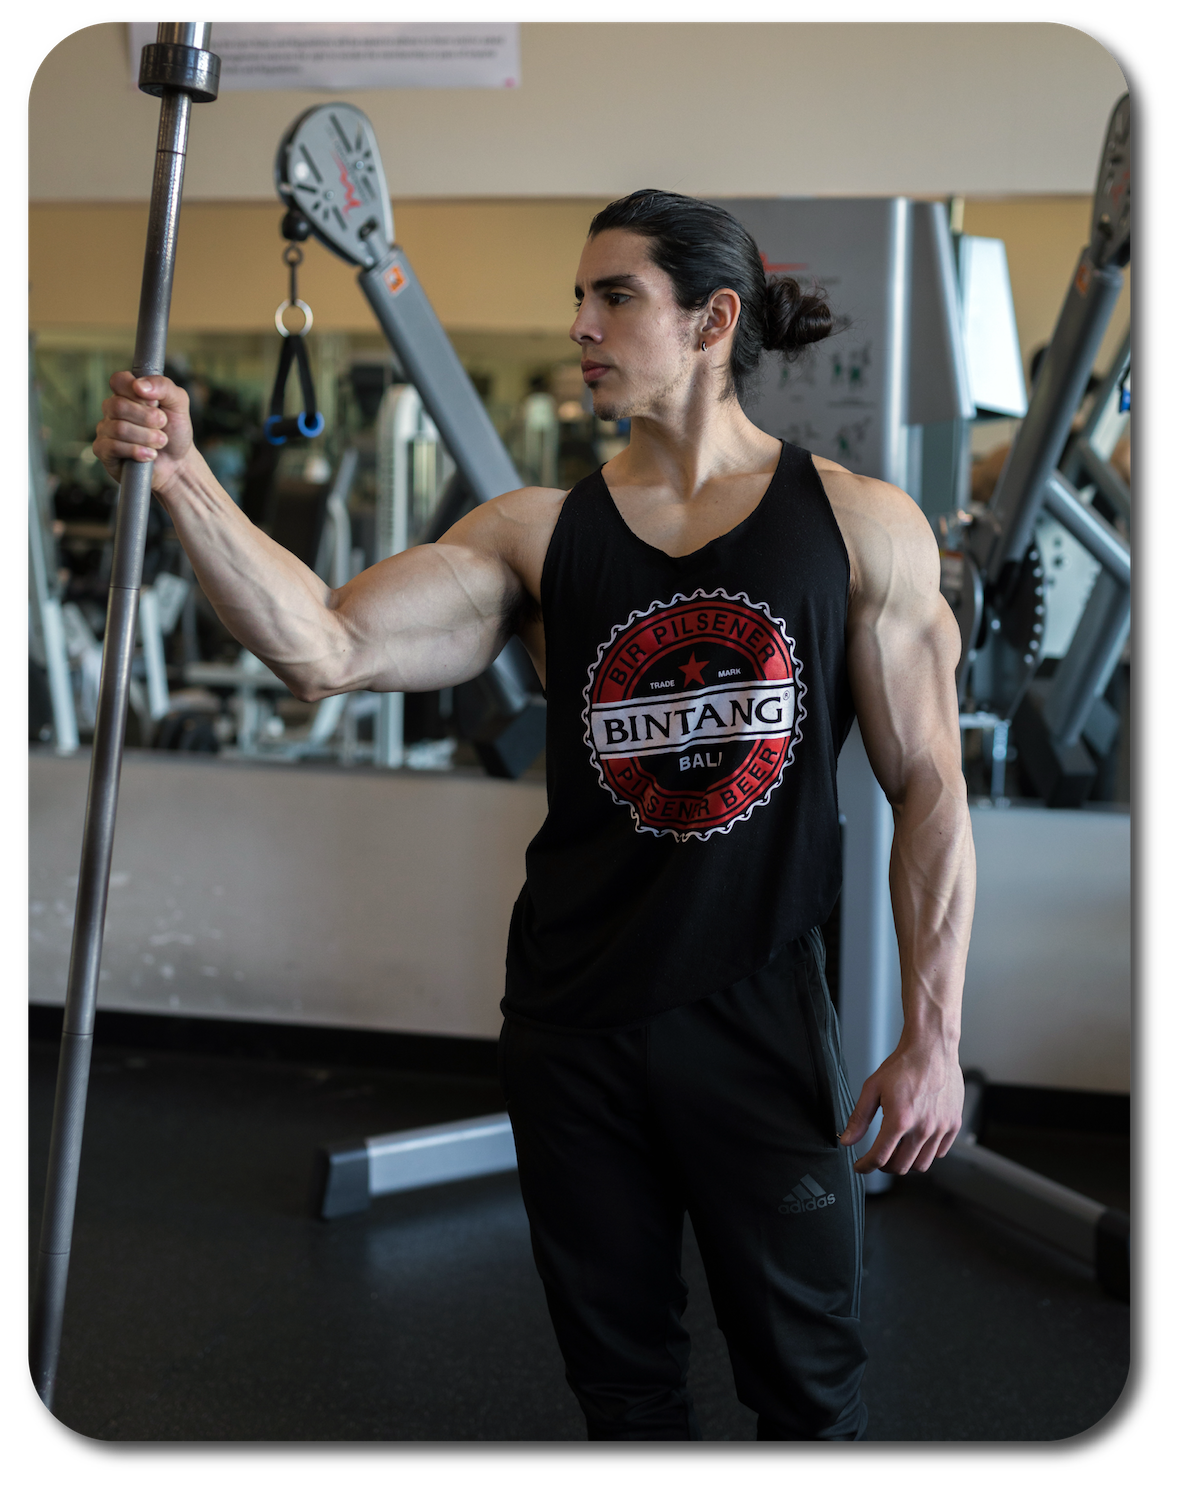 Dean Hartwig - Best-selling fitness author of Physique Building, pro lifetime natural bodybuilder, and YOUR coach on this physique building journey.